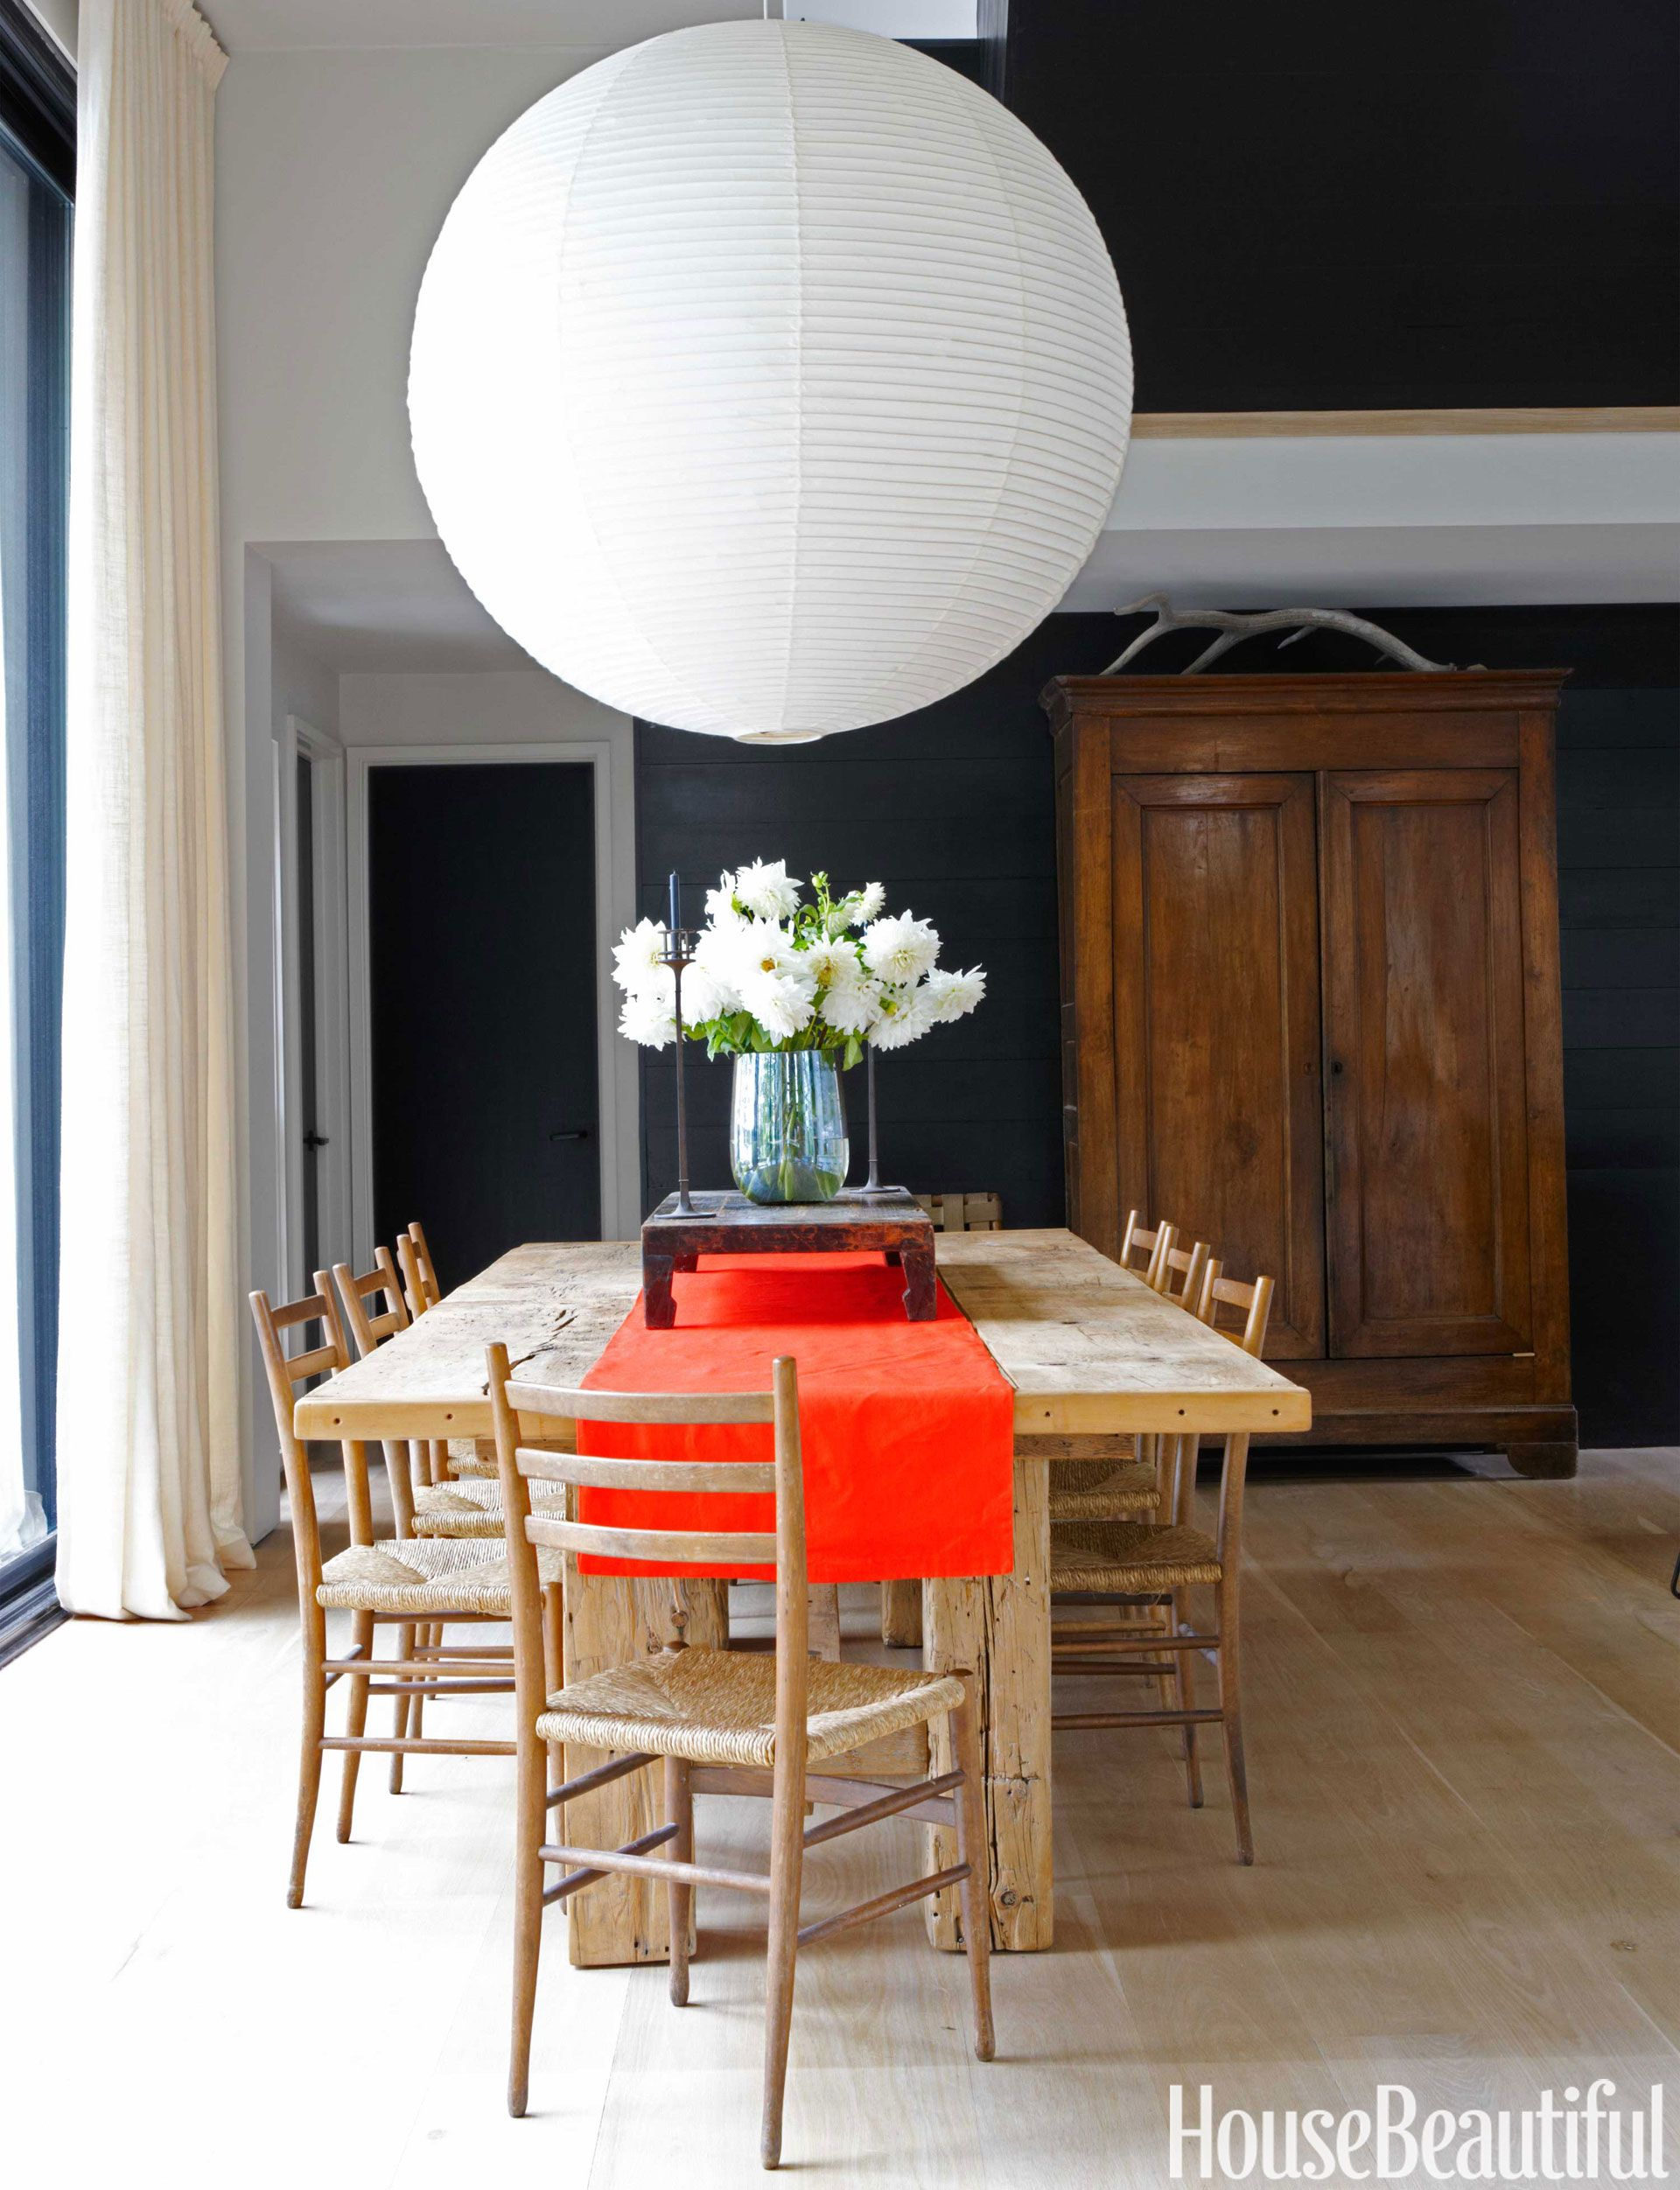 The extra large akari lantern by isamu noguchi hovers like a full moon in a modern upstate new york house the paper shade casts a warm glow over the